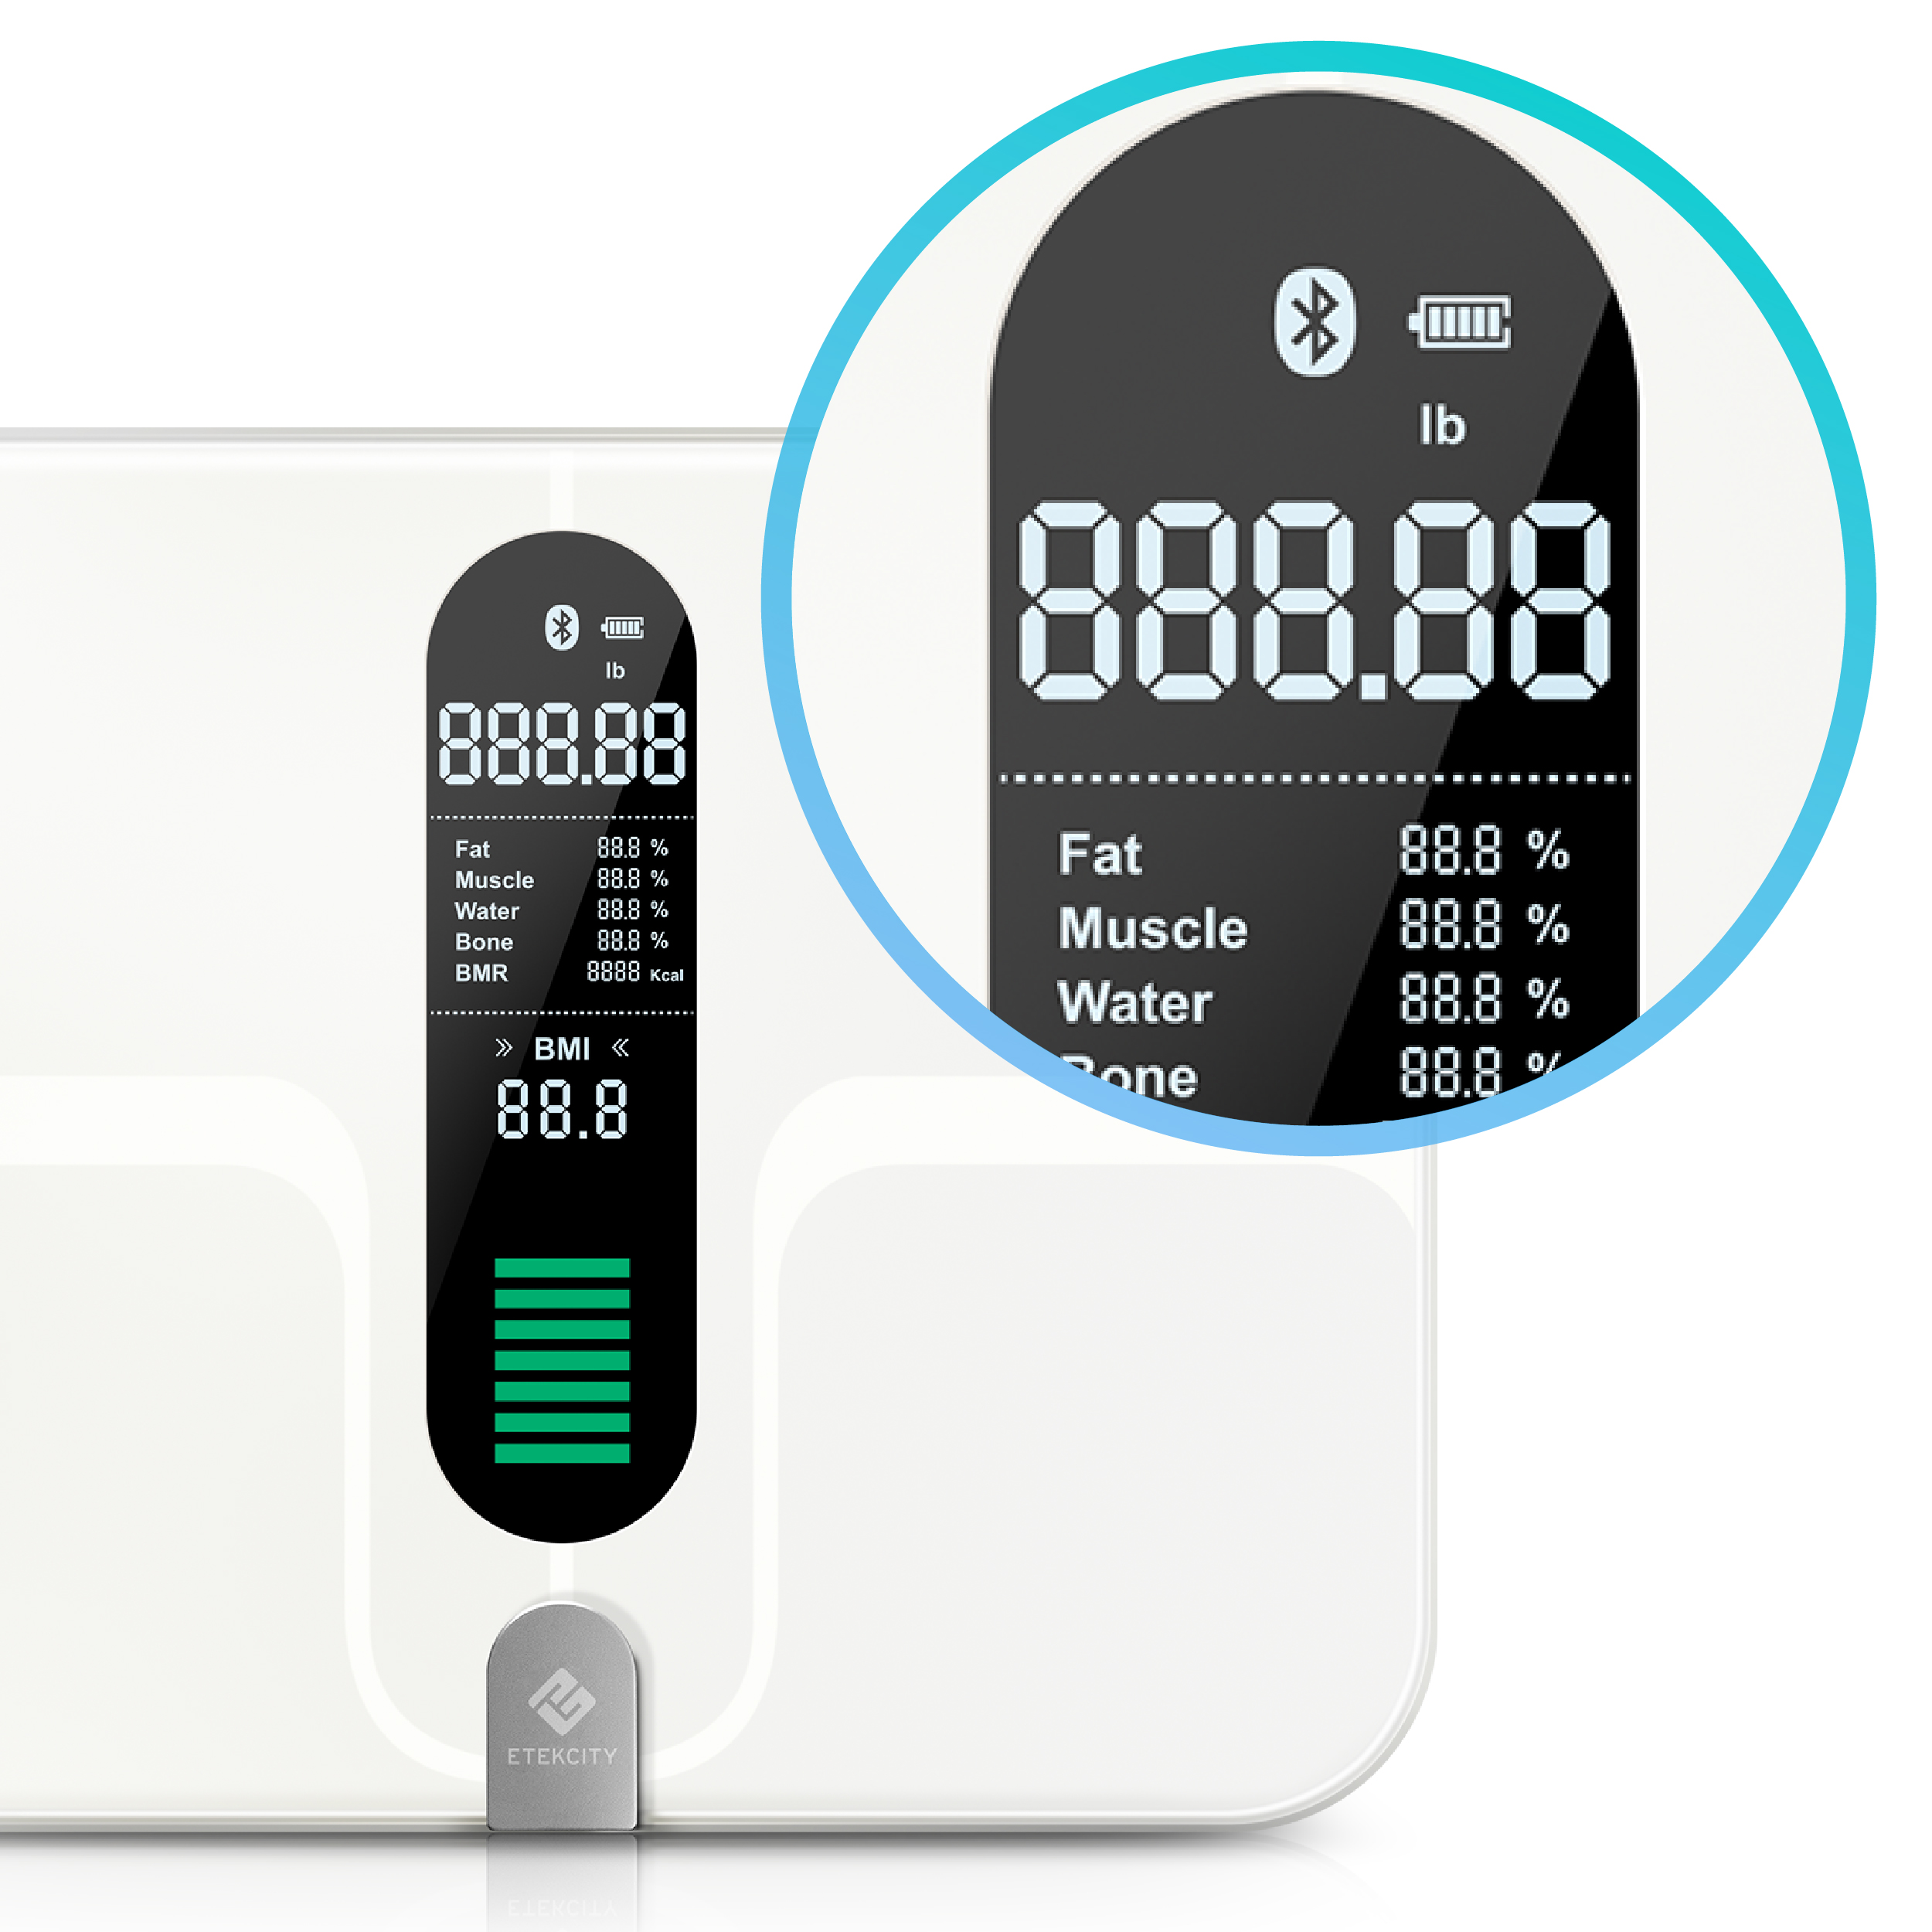 Clear LCD Display   Get a clear view of your body metrics at a glance, beautifully displayed on the scale.